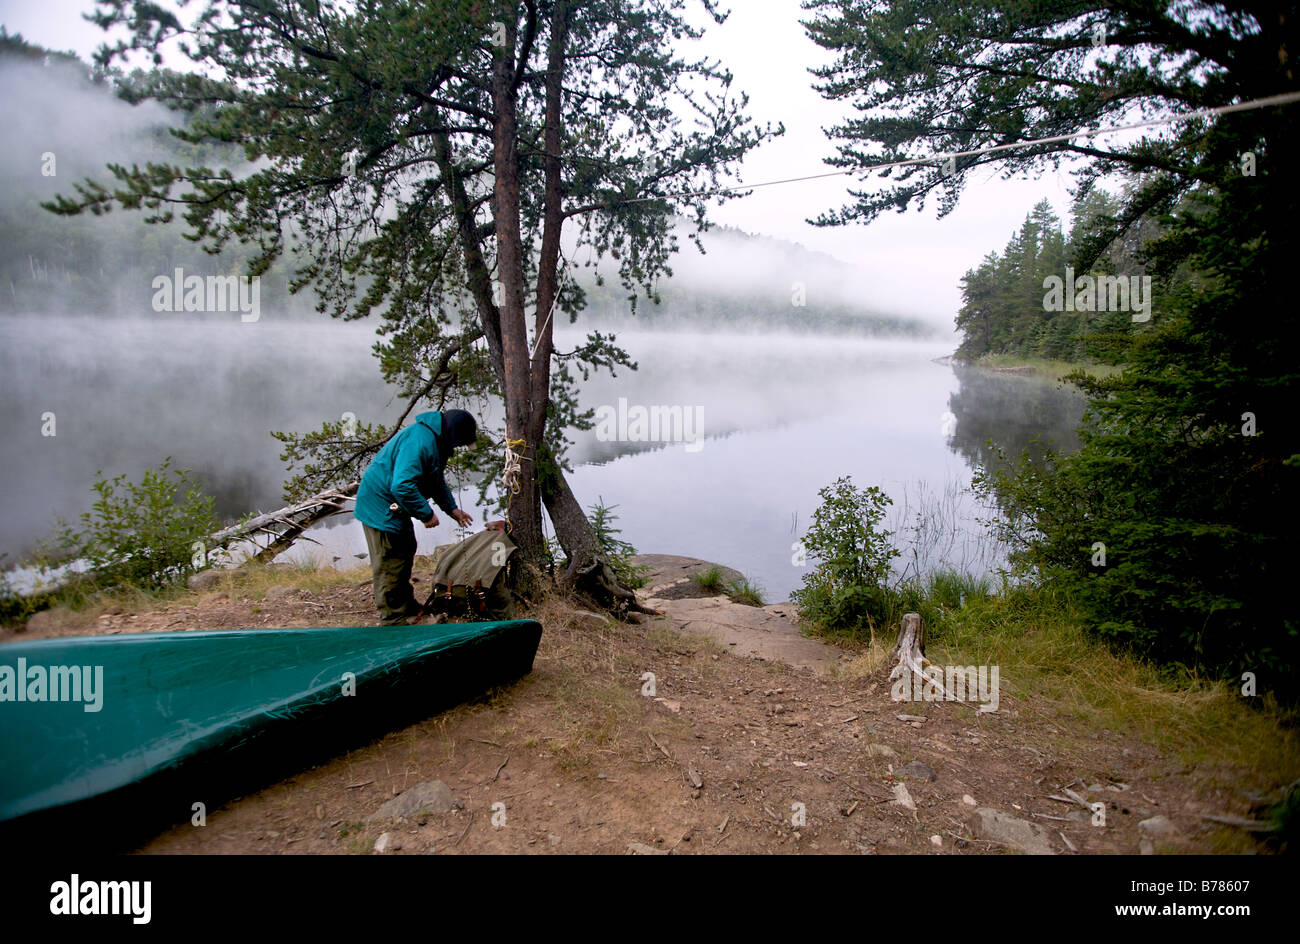 Taking down the food pack that hangs from a tree at base camp in Boundary Waters Canoe Area in Minnesota. - Stock Image